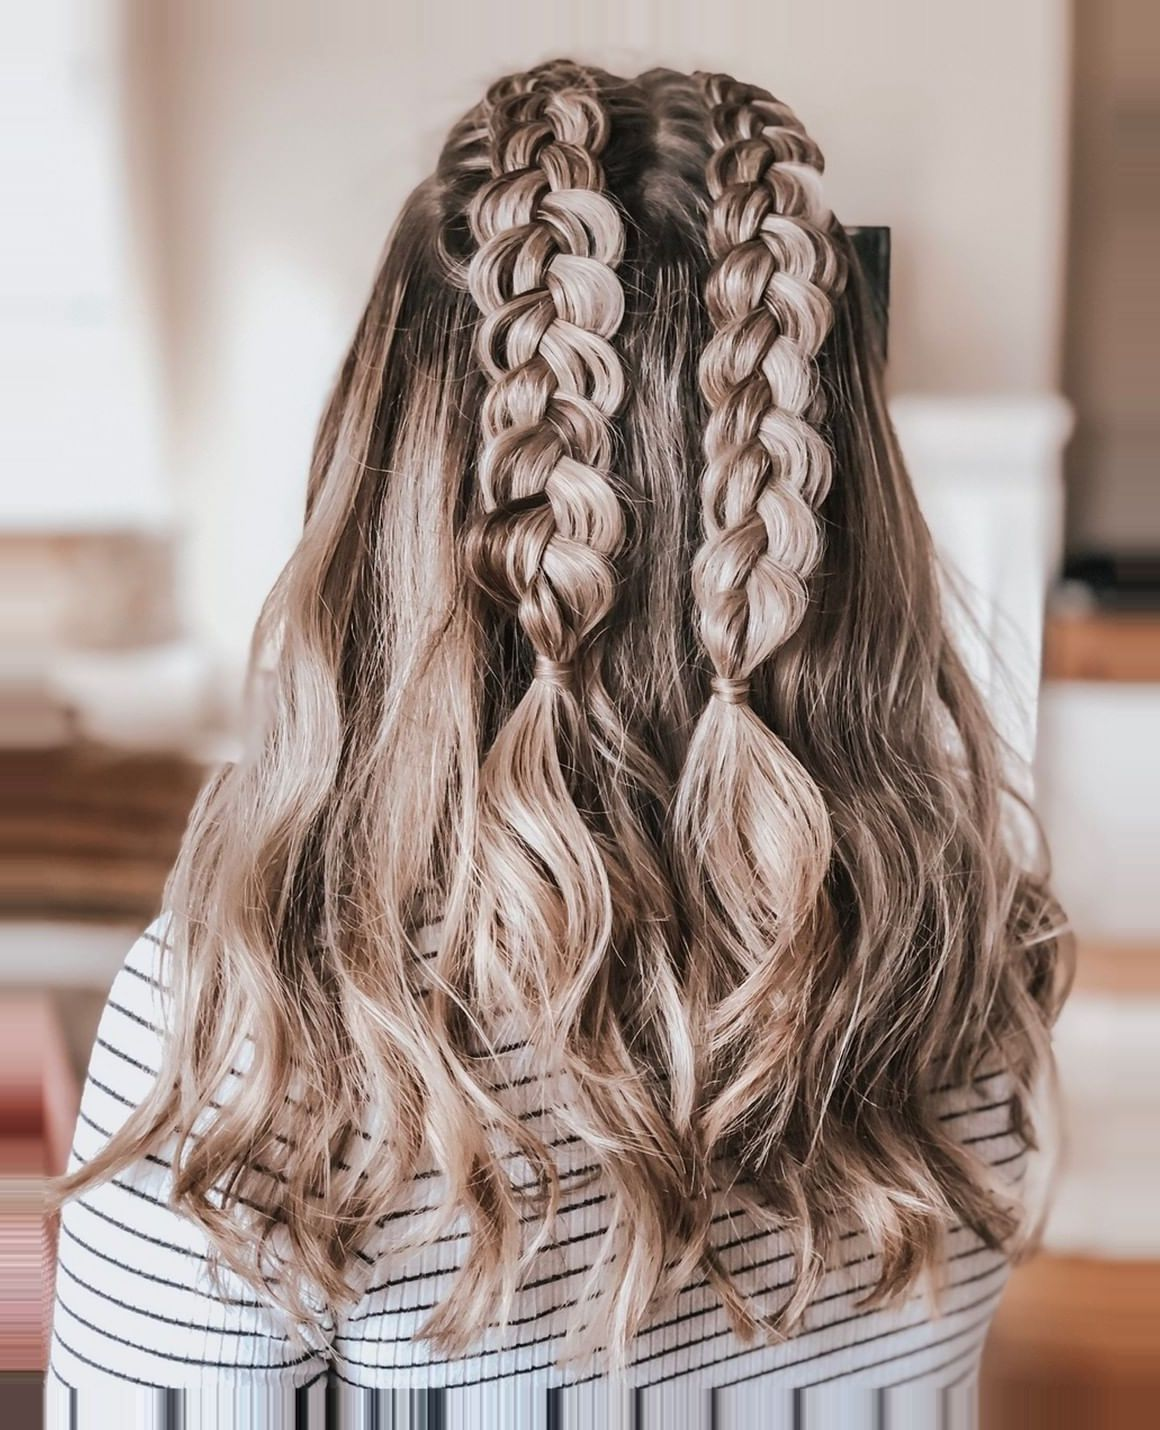 ##braids #desires #hairstyles #homecoming #lady #Pics #strategies #uptodate #vsco Most up-to-date Pics Homecoming Hairstyles vsco Strategies Each lady desires so …, #Braids #desires #Hairstyles #Homecoming #Lady Sie sind an…</p>